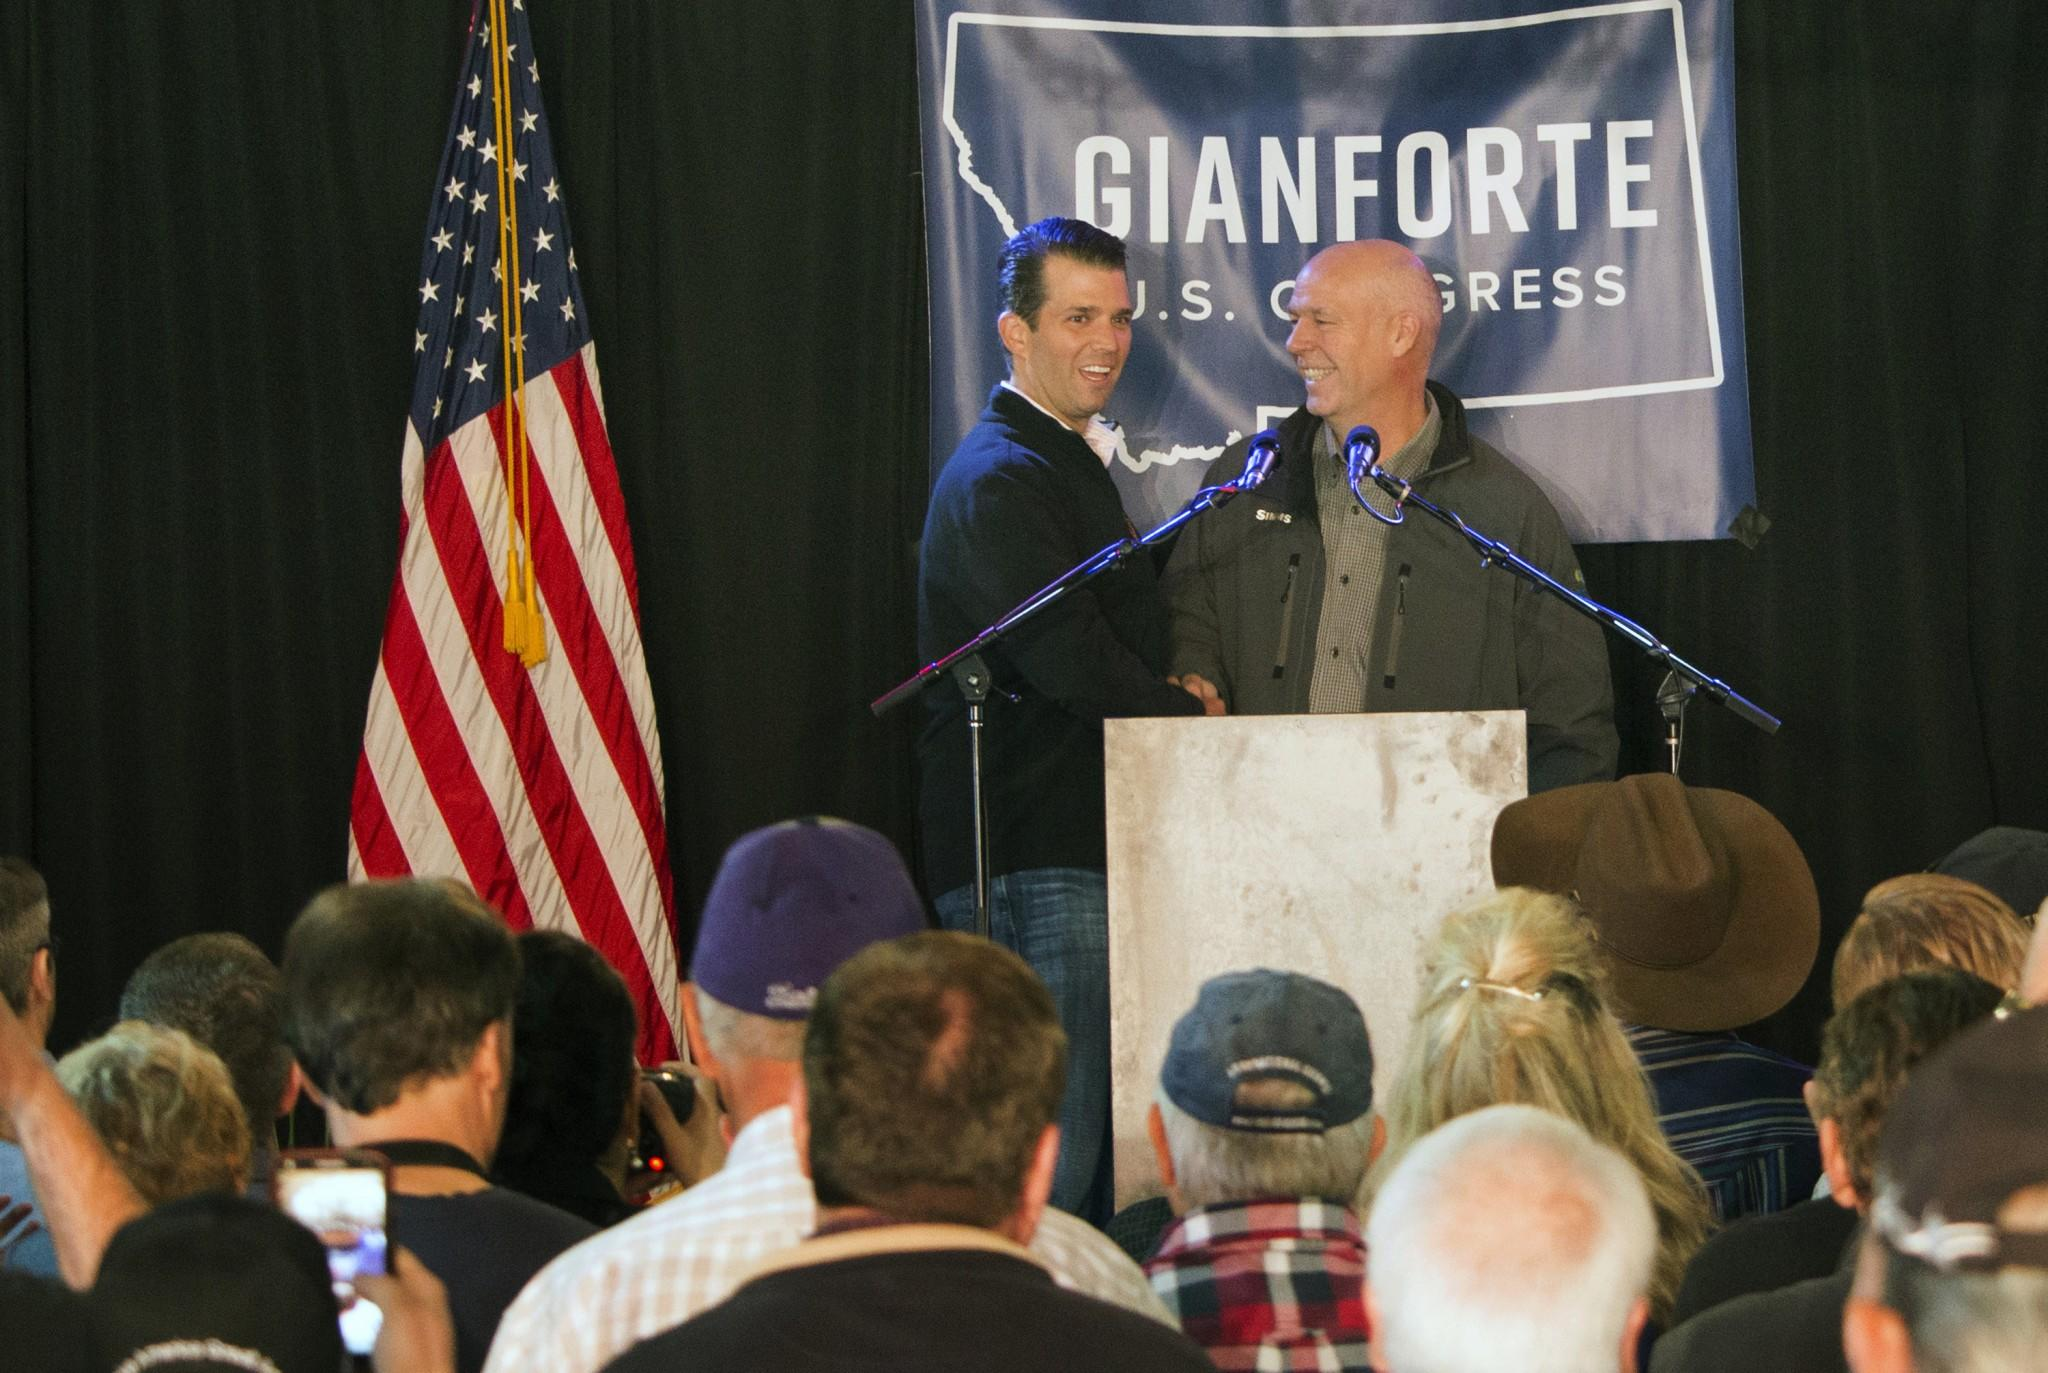 Donald Trump Jr. joins Gianforte at a rally in East Helena, Montana, on May 11, 2017